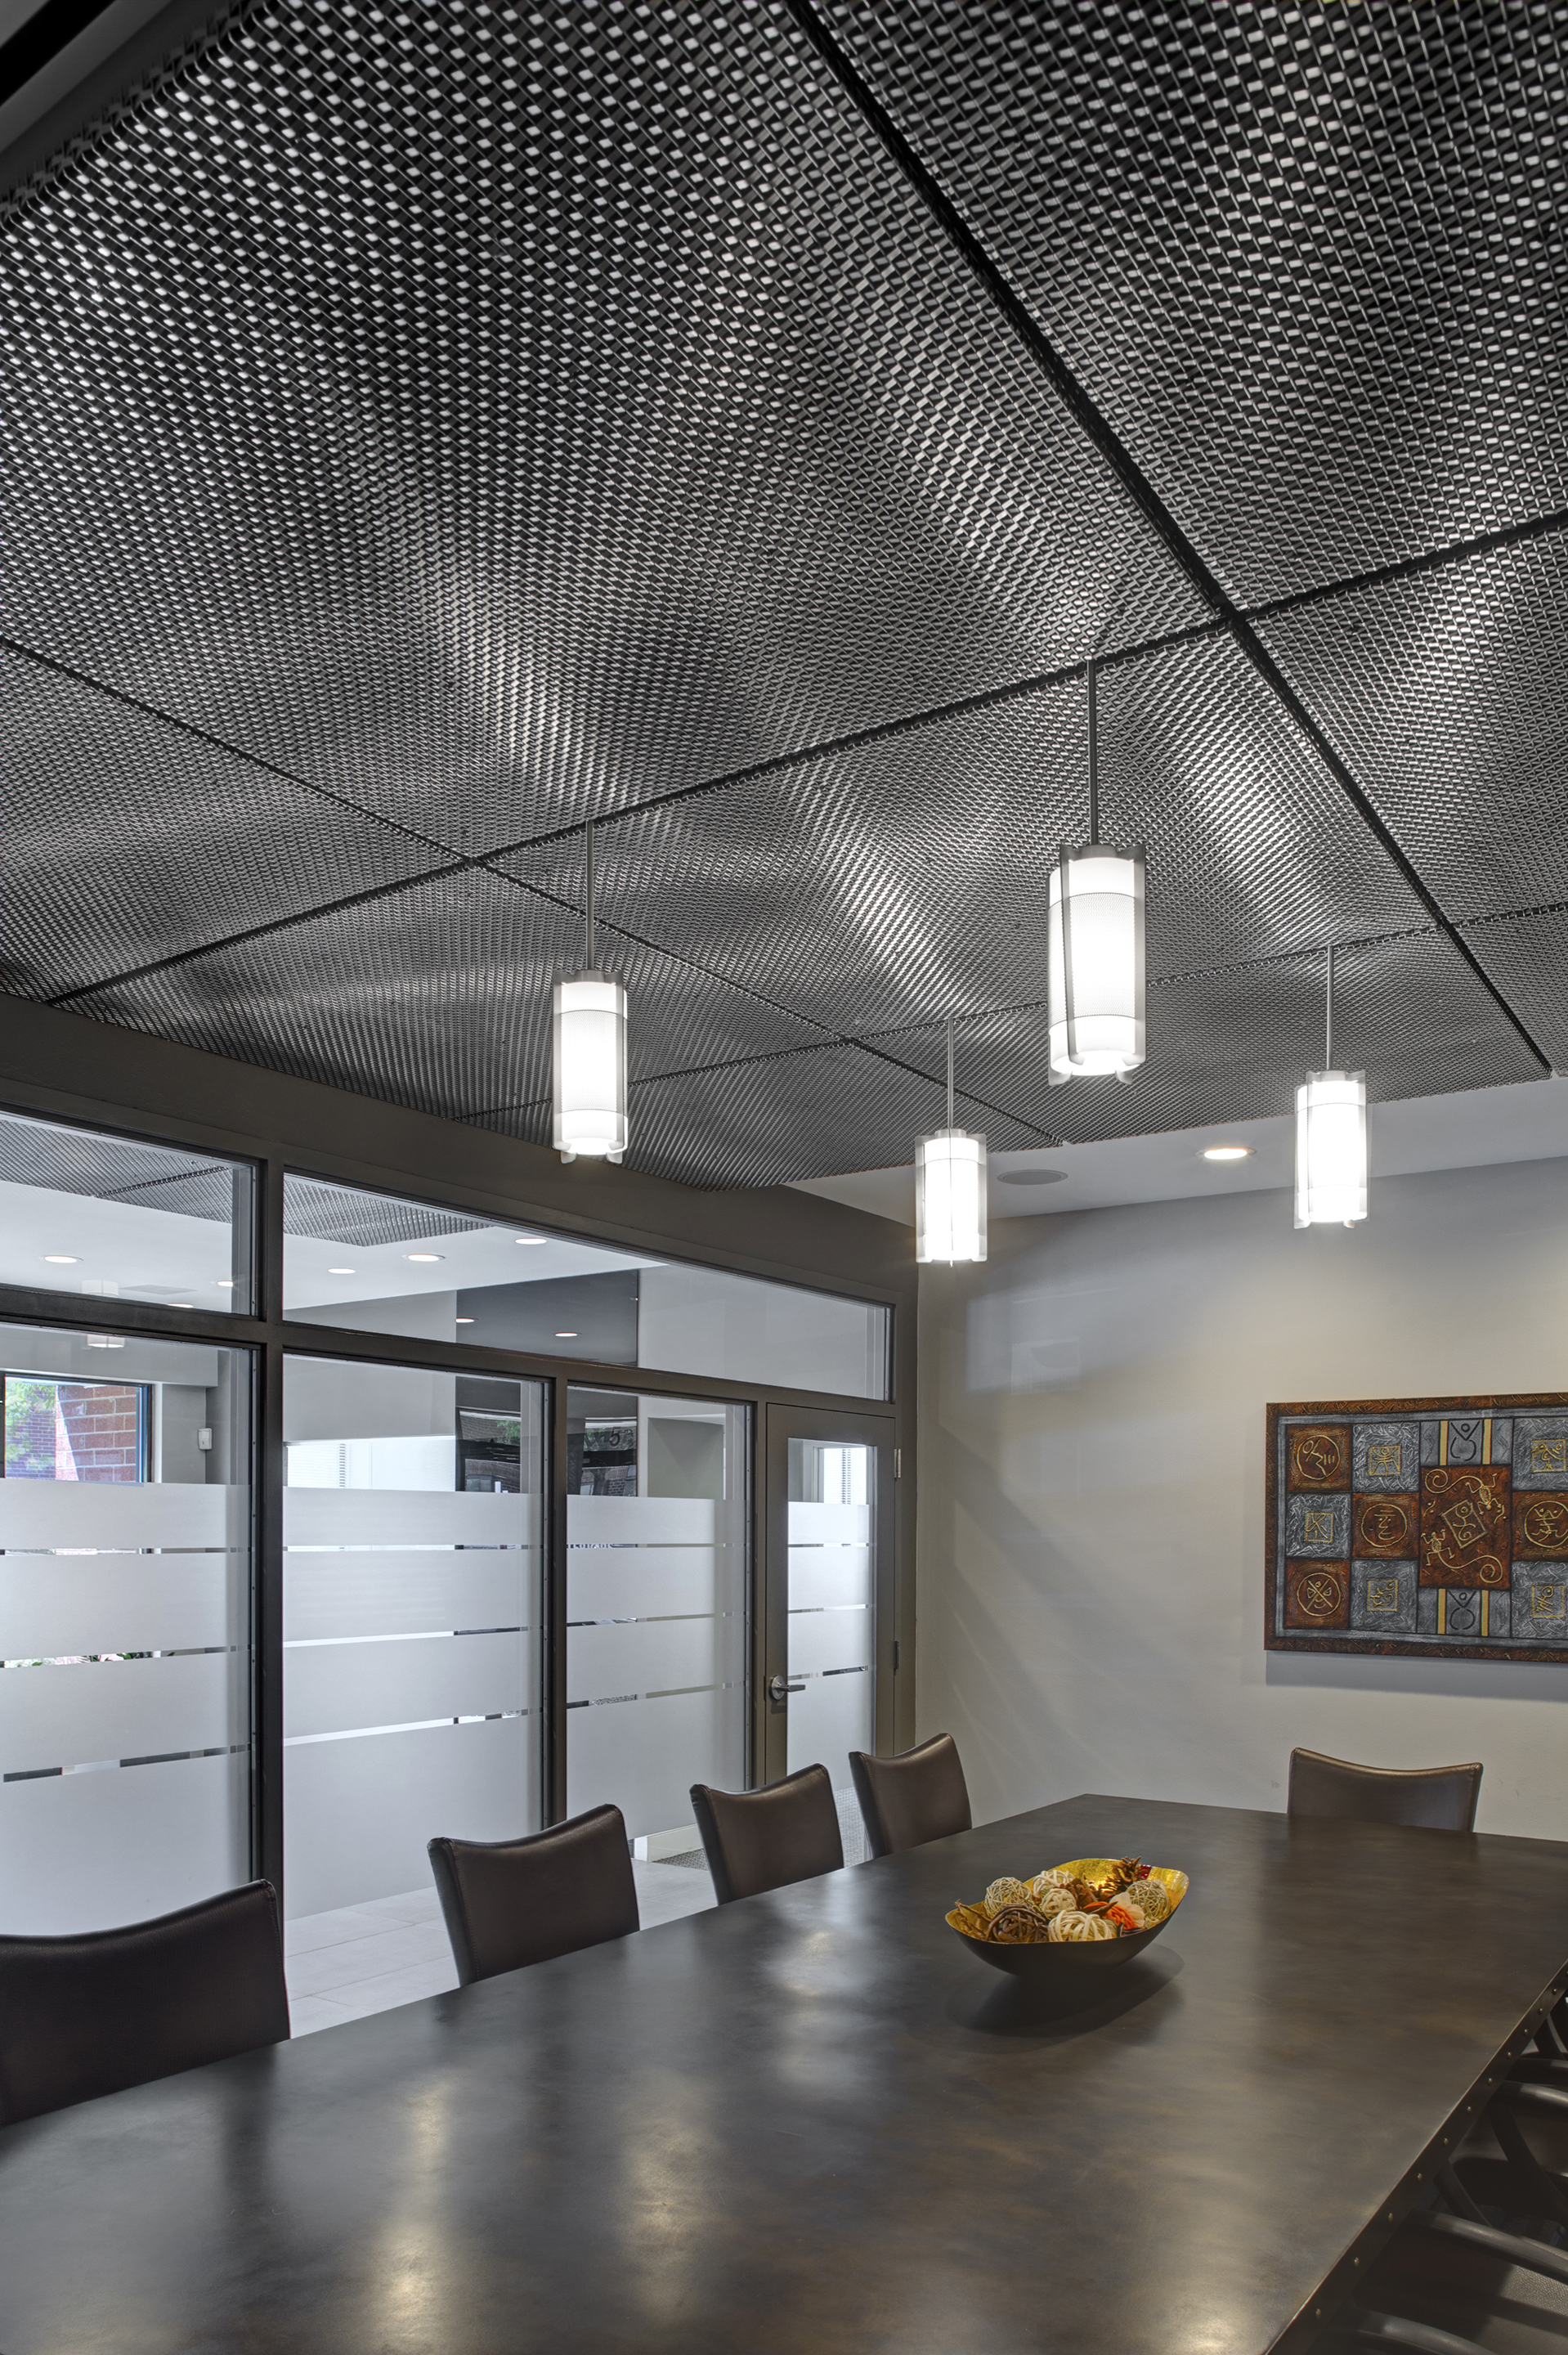 woven stainless steel ceiling panels 2009 alain jaramillo sm4